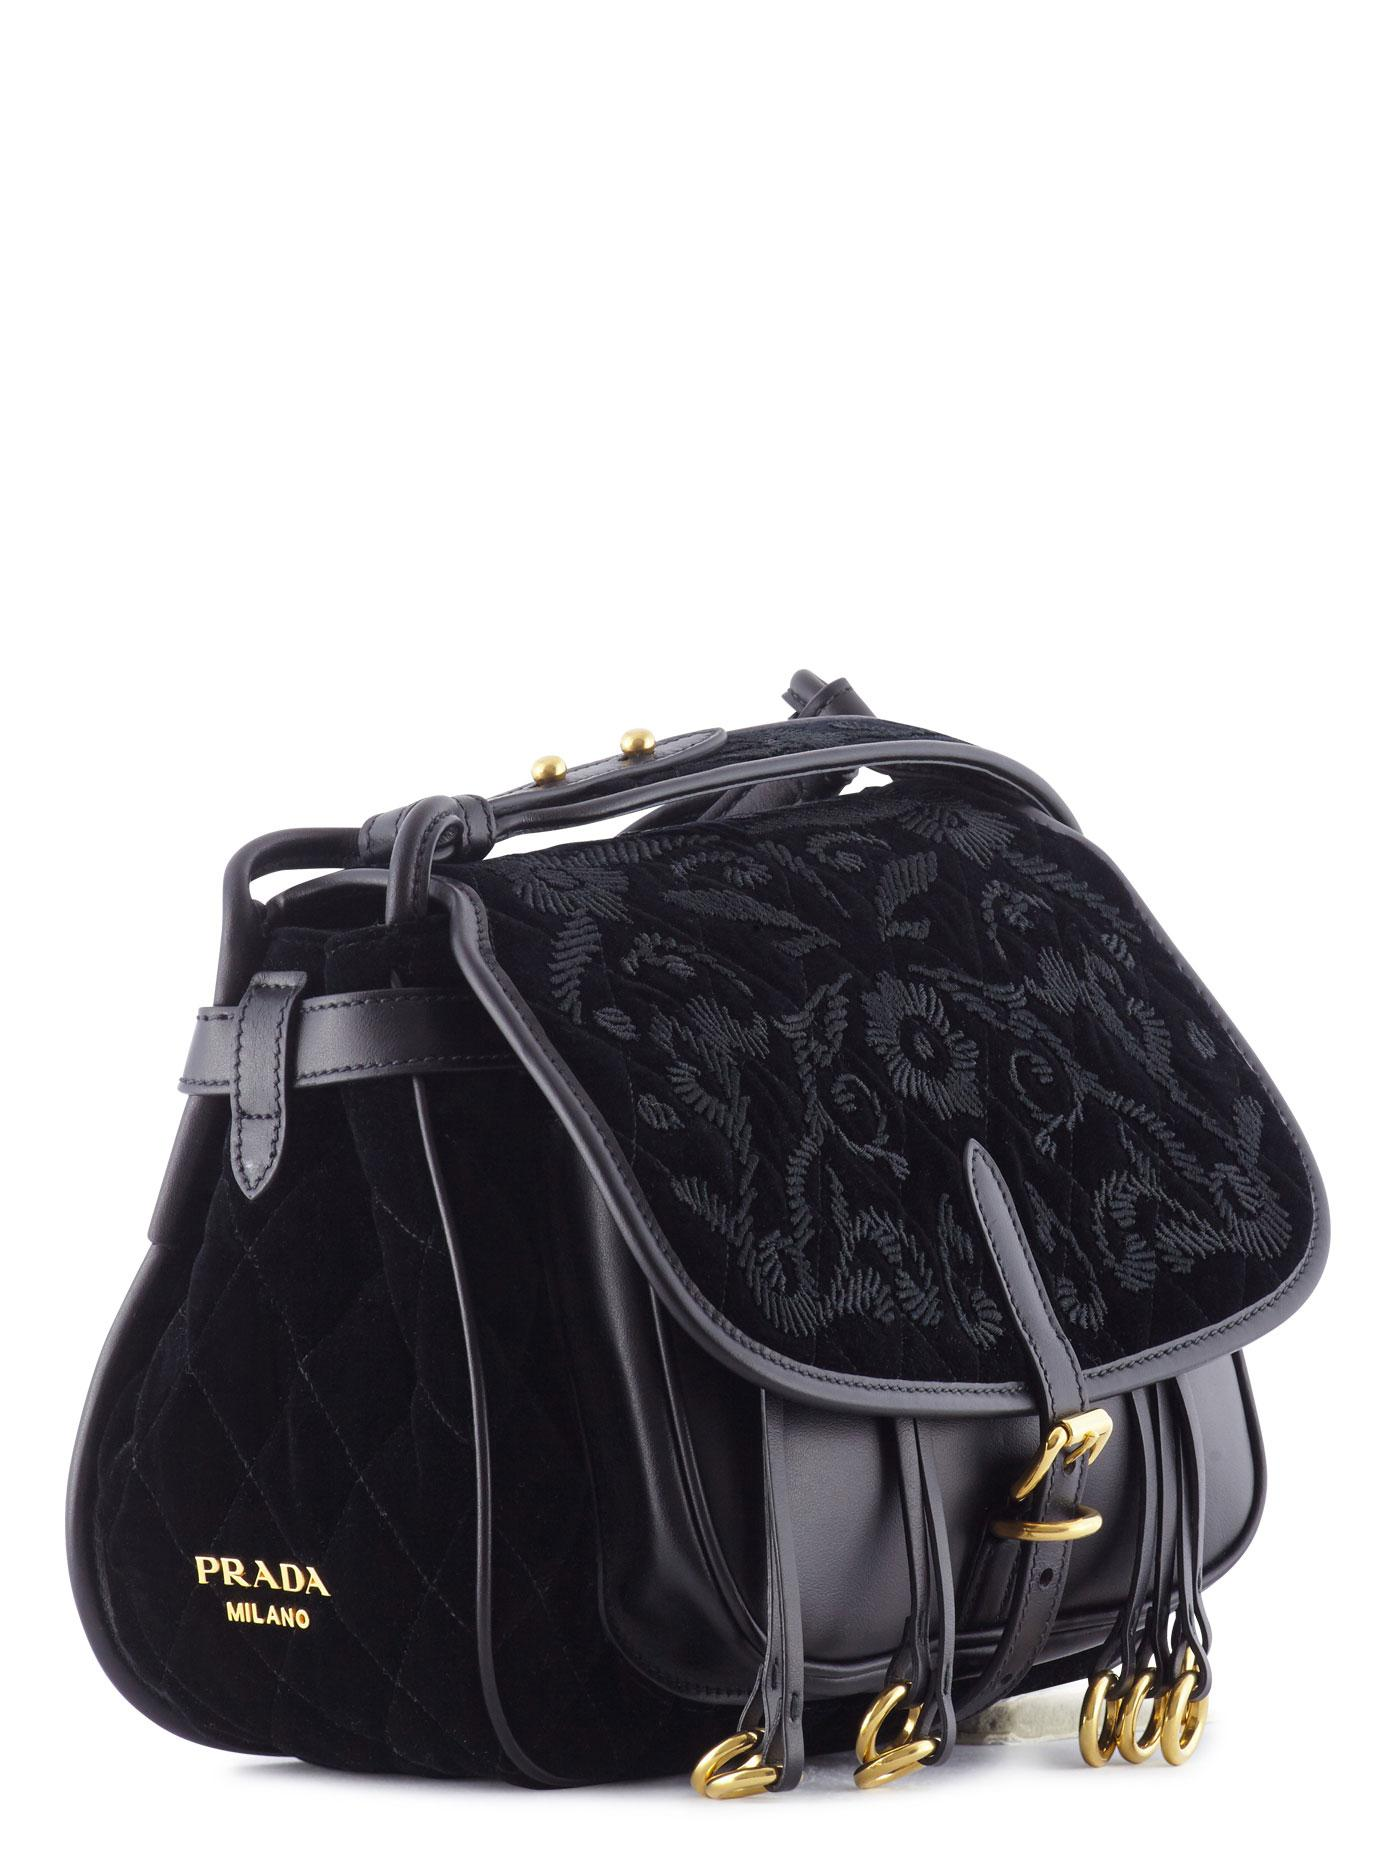 f3451d645c13e2 Prada Corsaire Embroidered Velvet And Leather in Black - Lyst